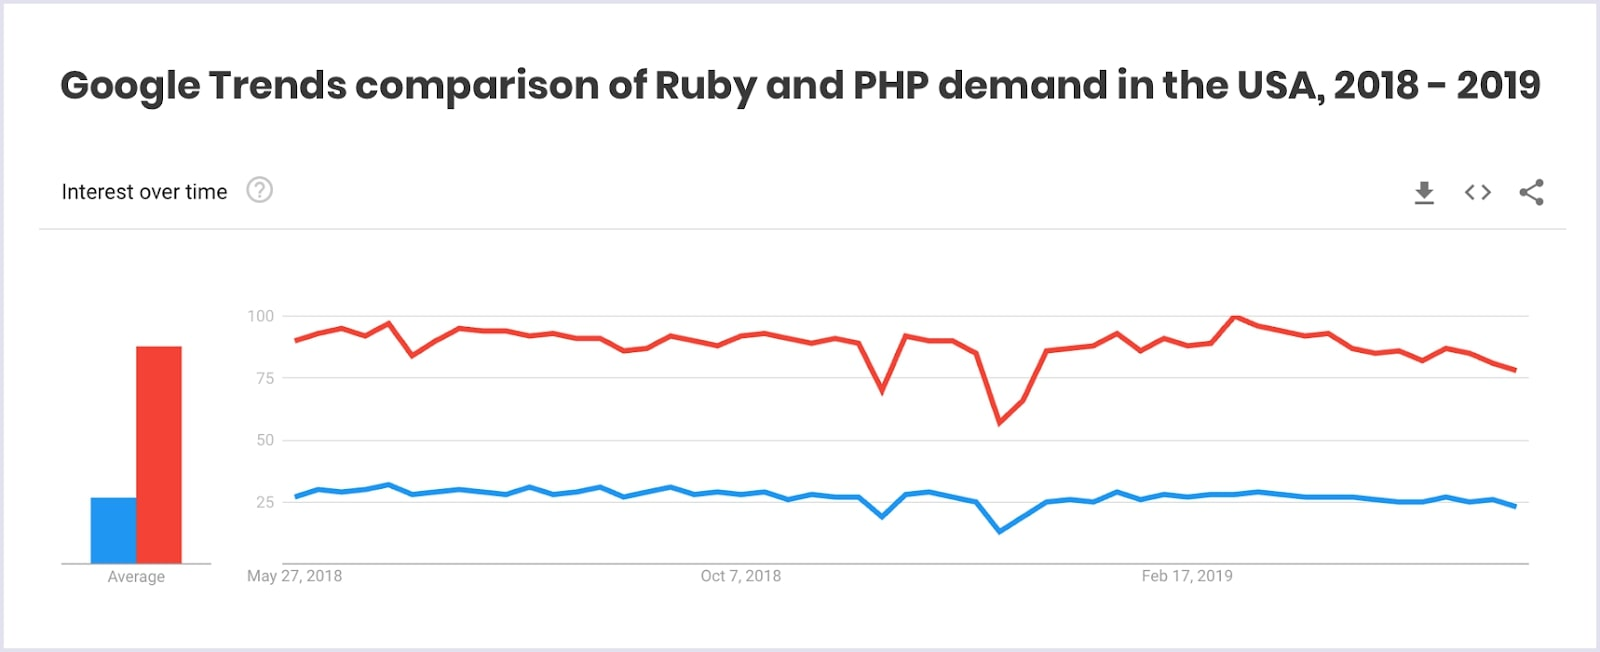 Google Trends on Ruby and PHP demand in the USA